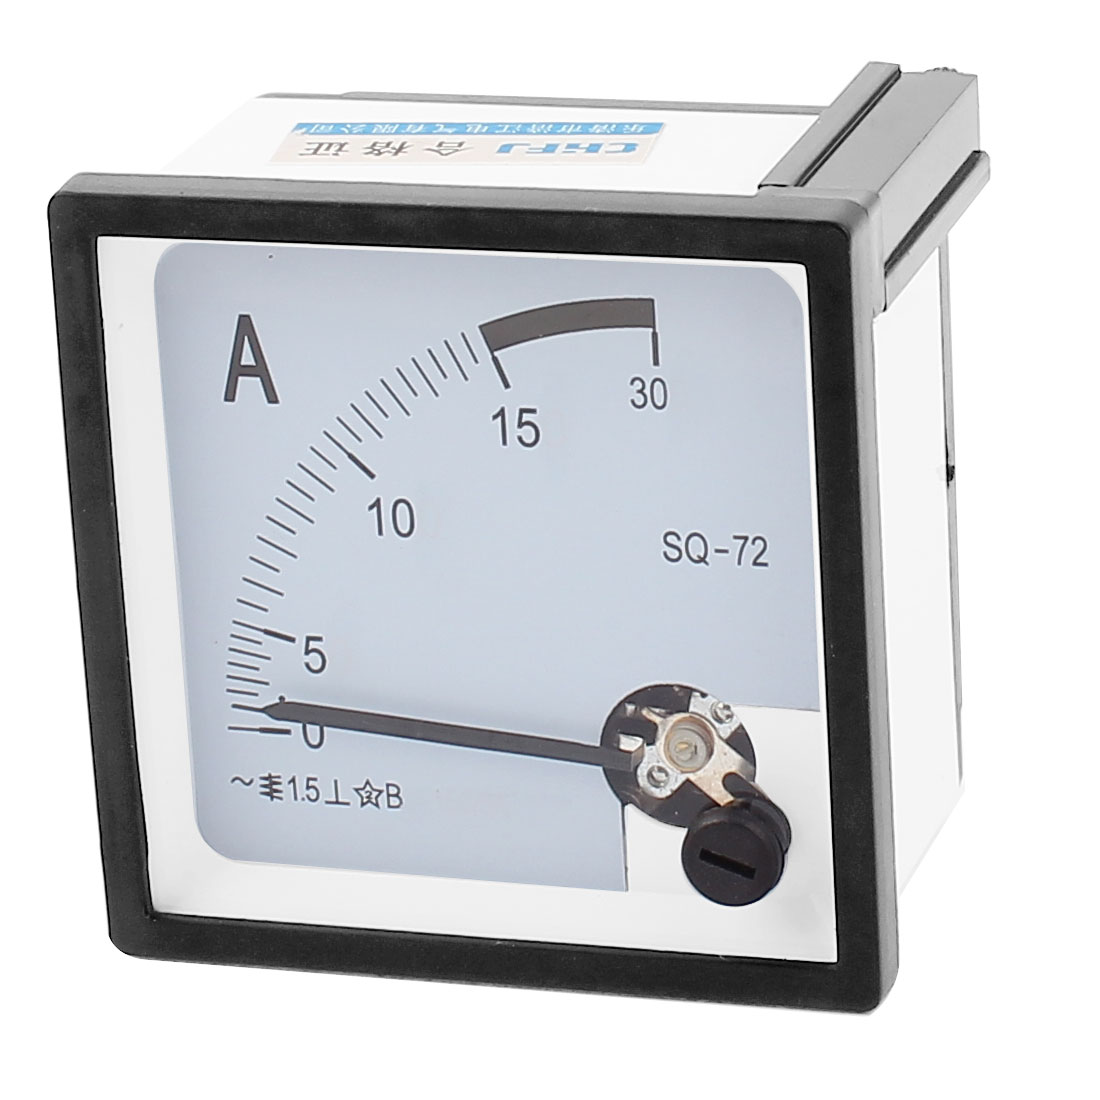 AC 0-30A Square Panel Mount Meter Gauge Current Analogue Analog Ammeter